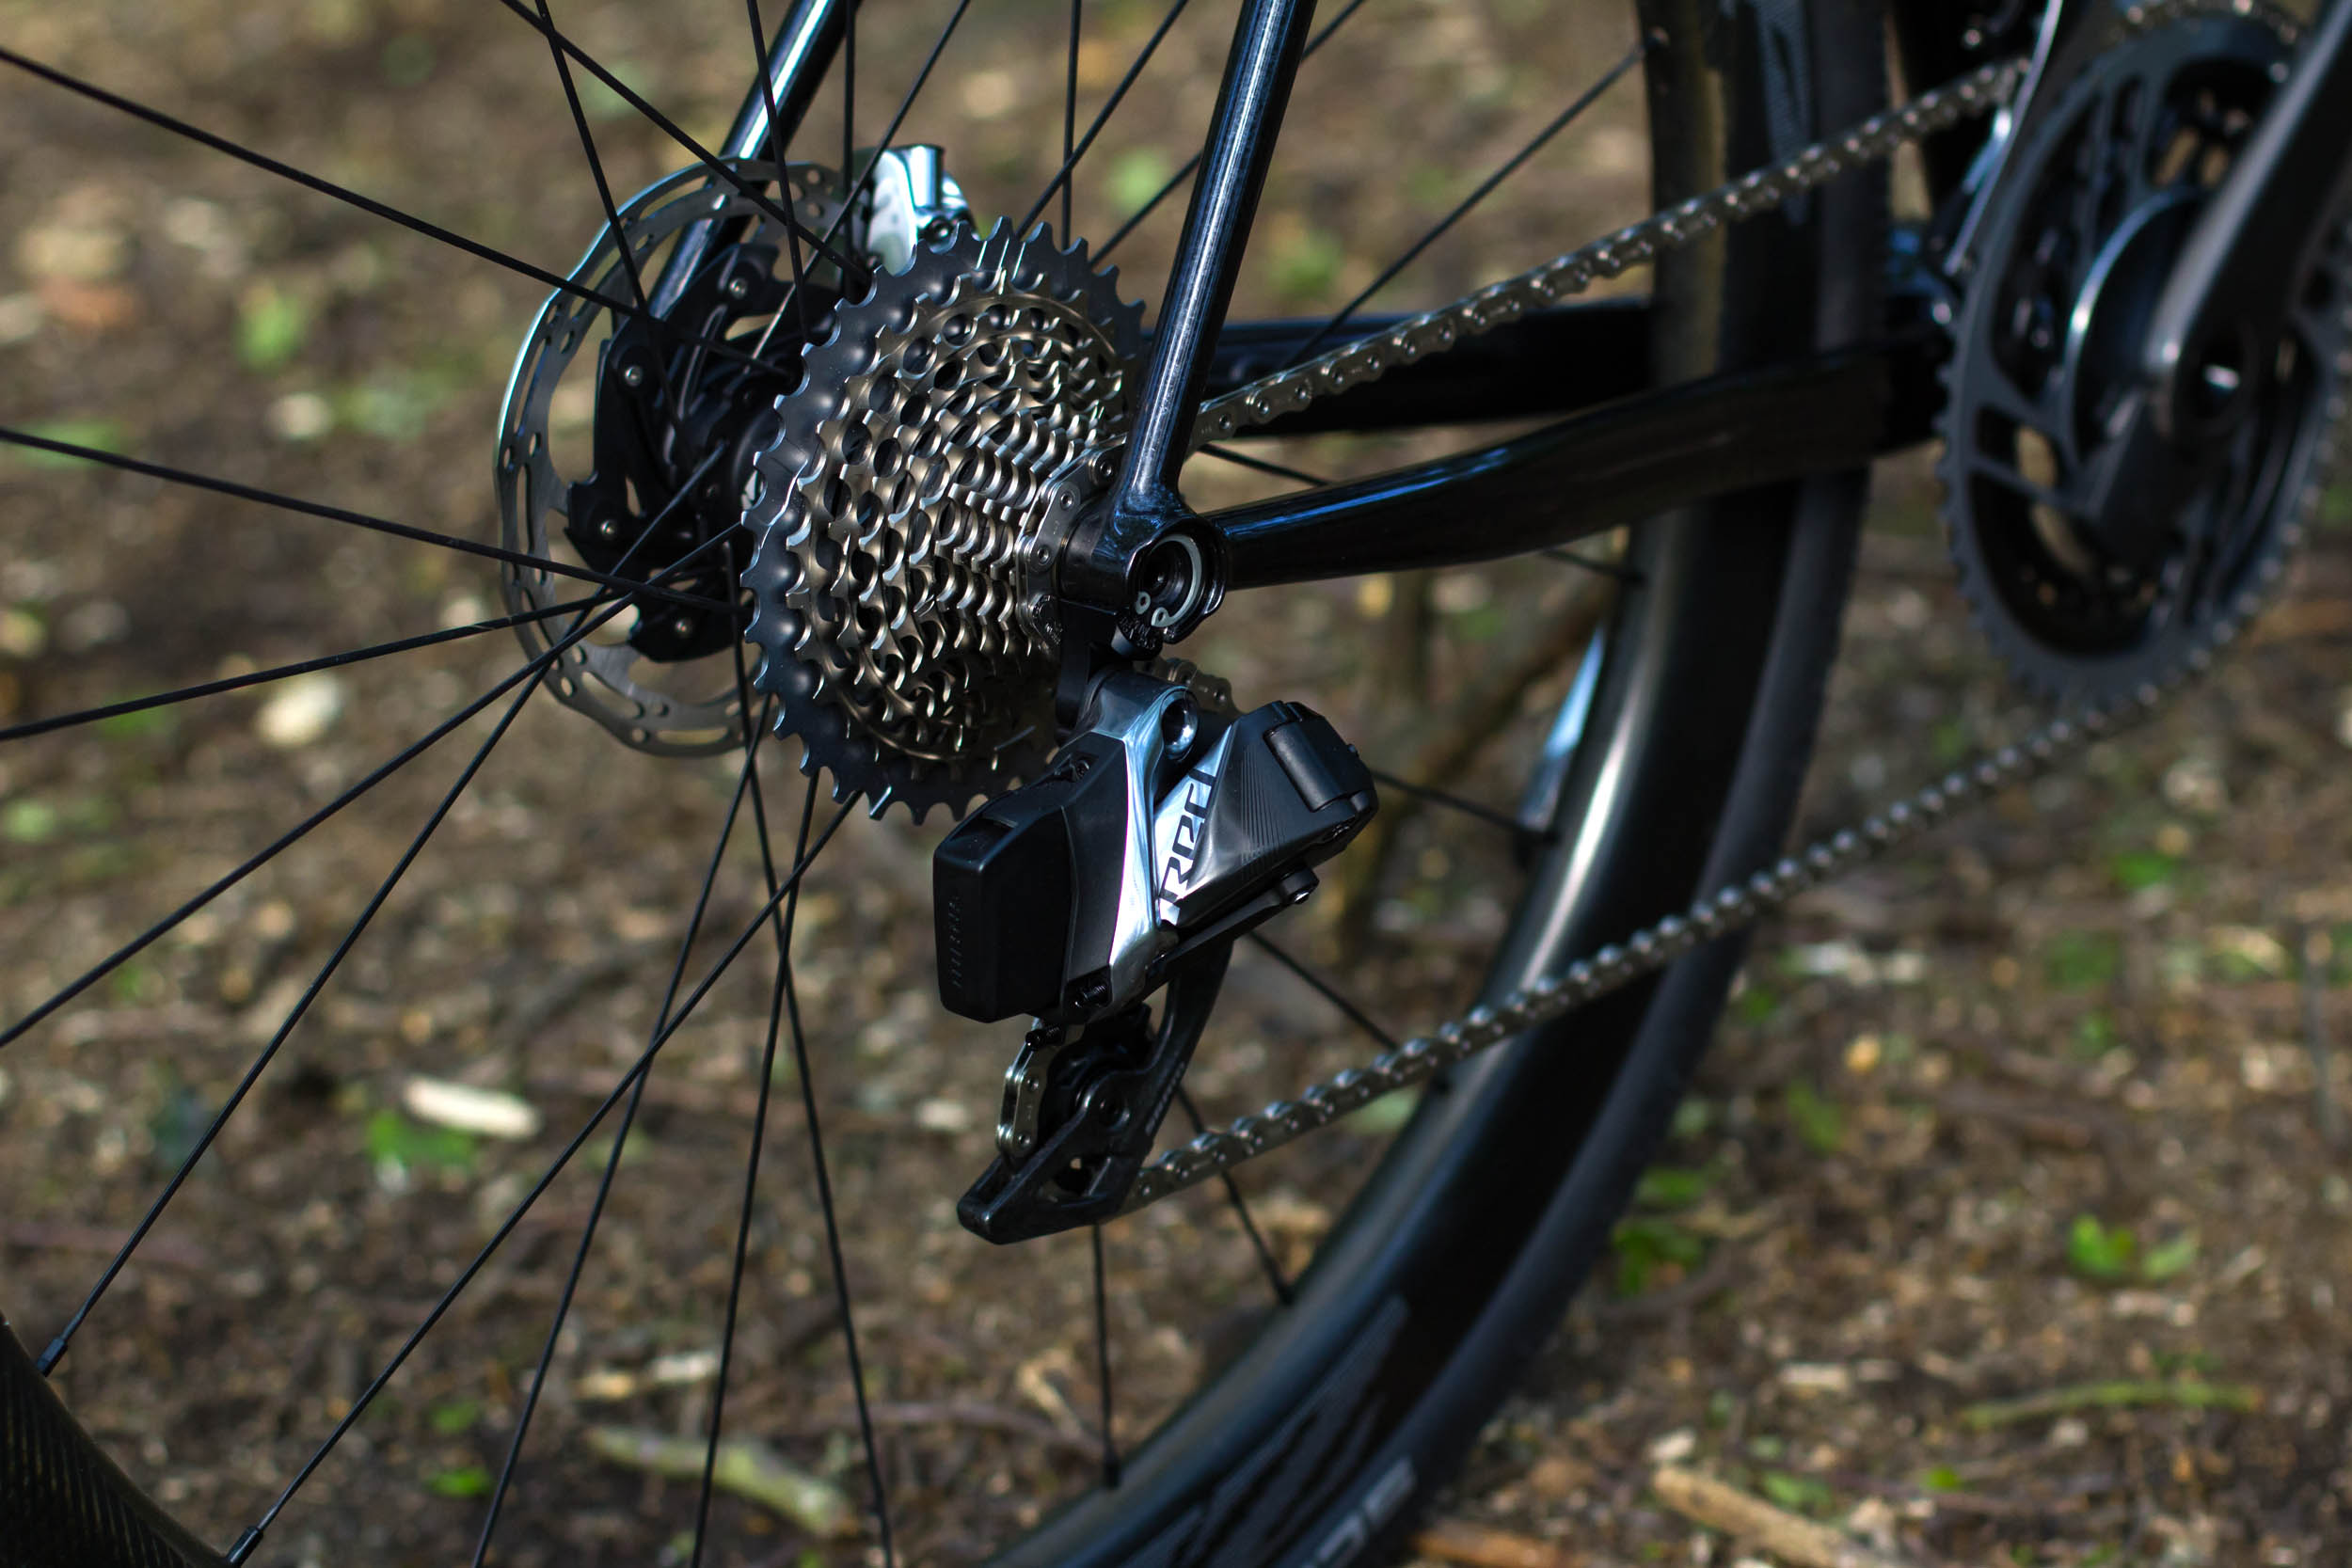 quirk_cycles_mamtor_3DPrinted_build_12.jpg